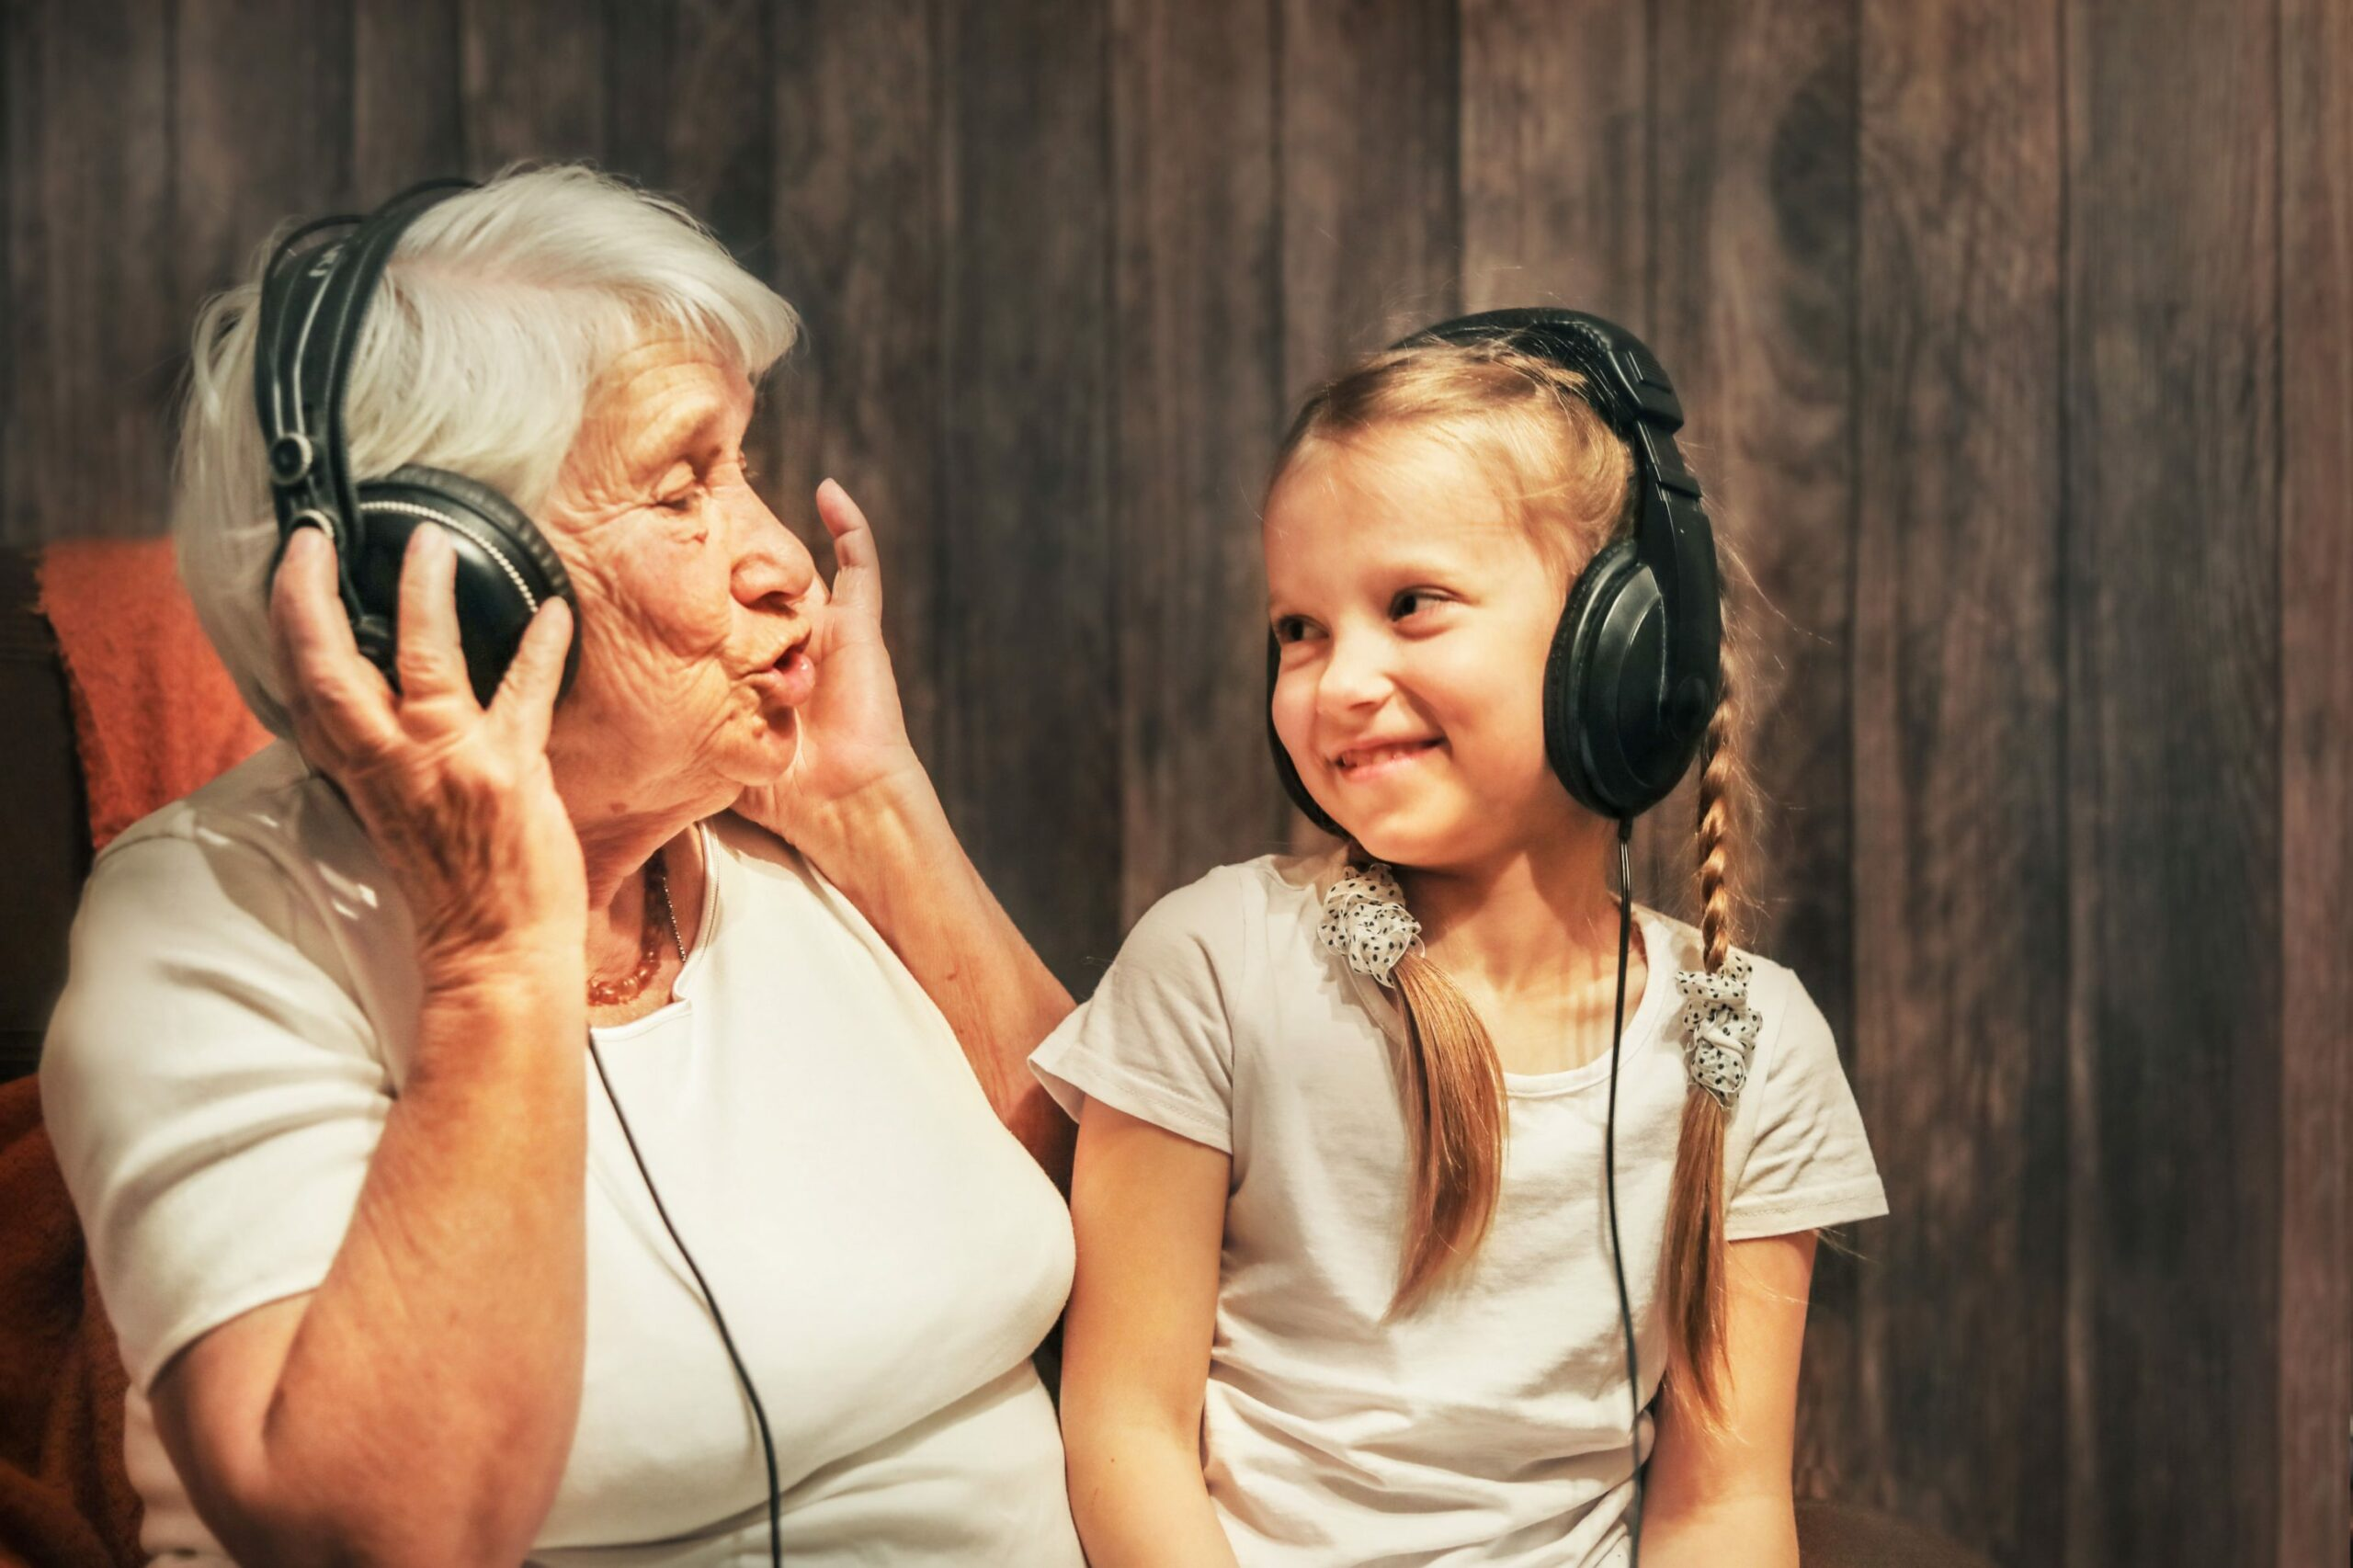 Old person and child listening to music